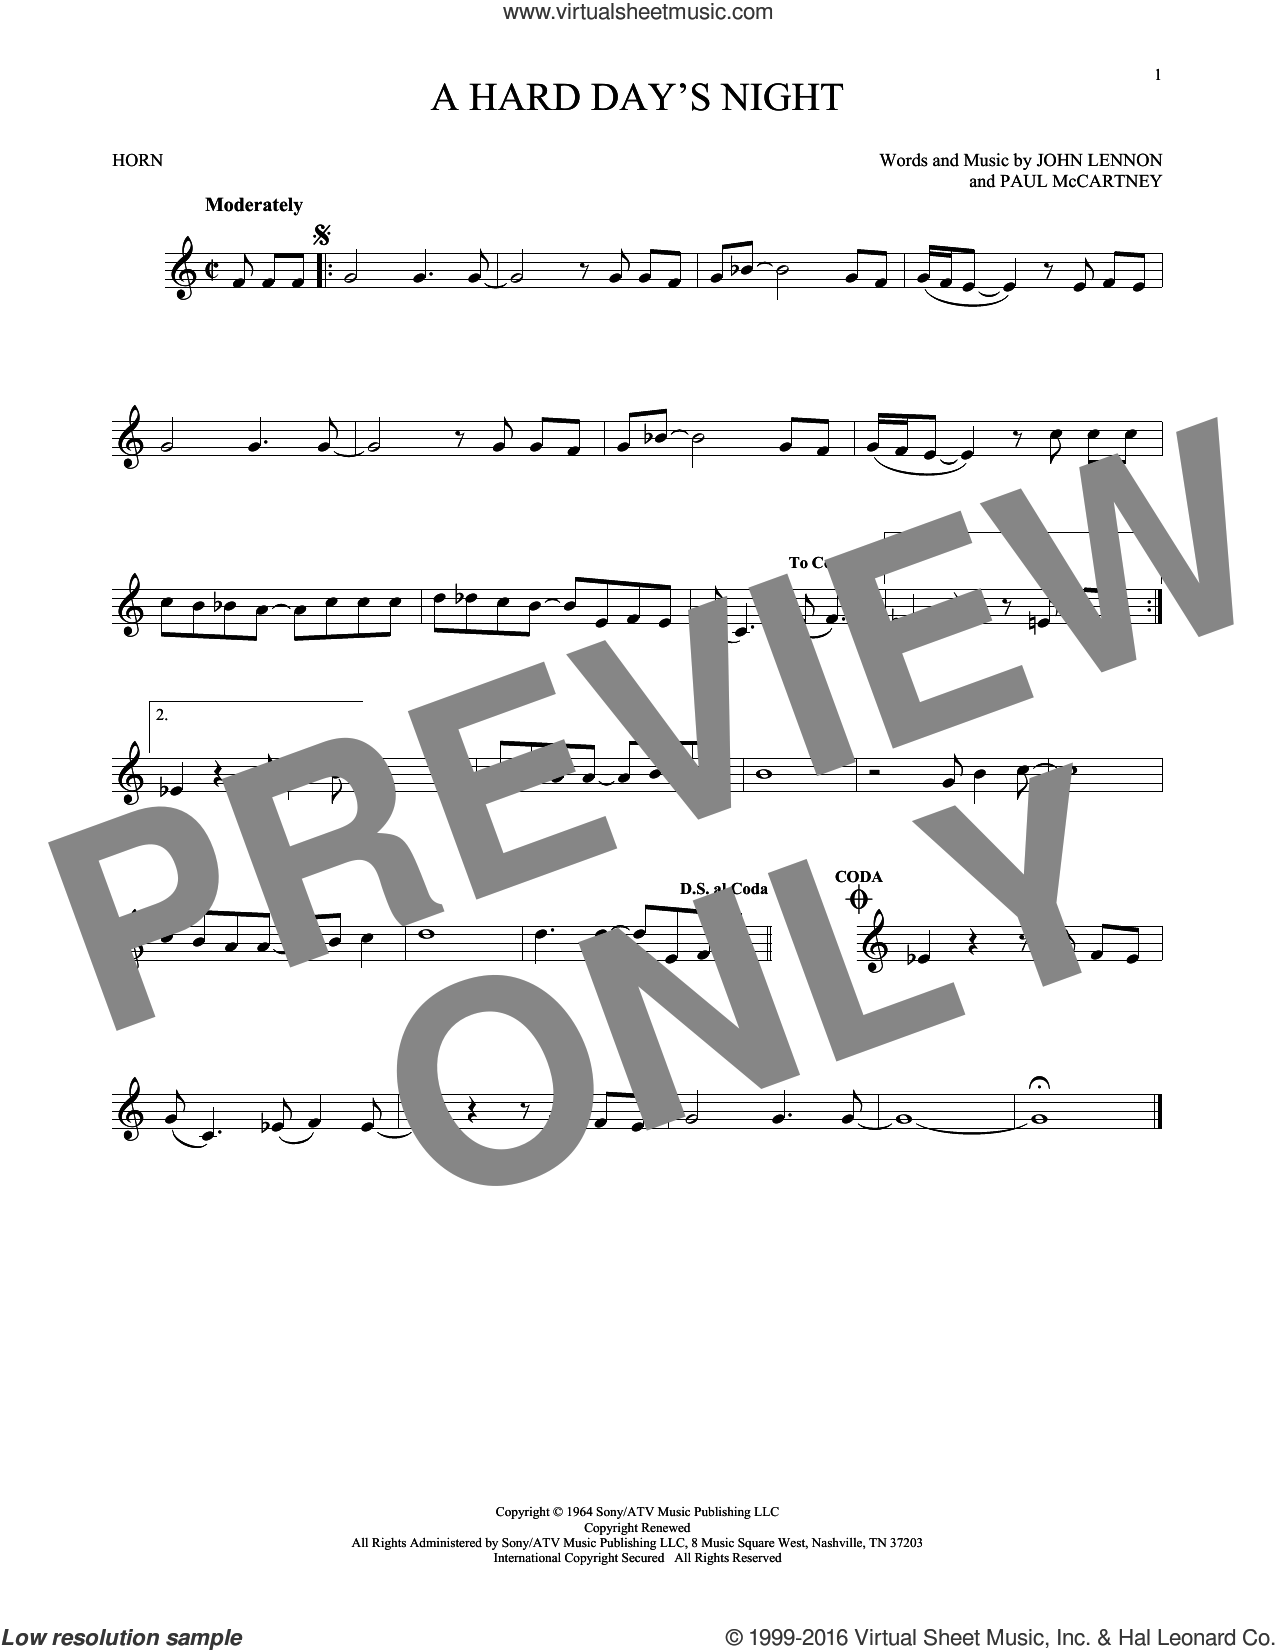 A Hard Day's Night sheet music for horn solo by The Beatles, John Lennon and Paul McCartney, intermediate skill level